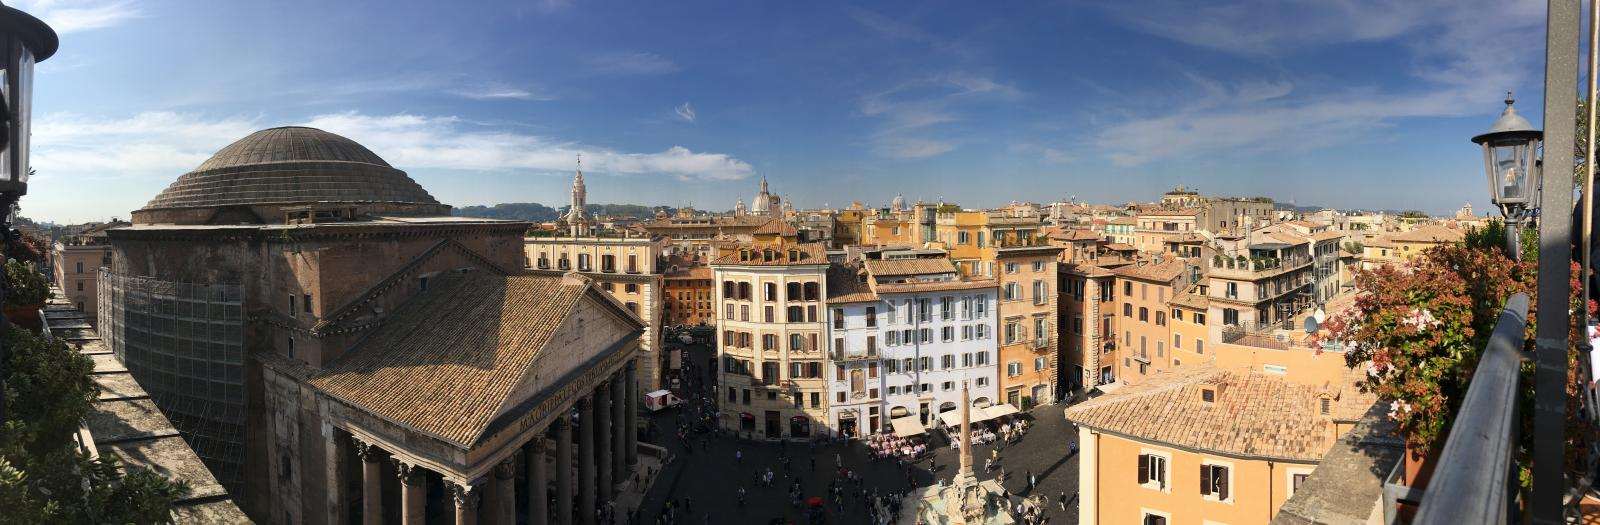 """Panorama of Pantheon from Albergo del Senato,"" Catherine E. Bonesho, unpublished."